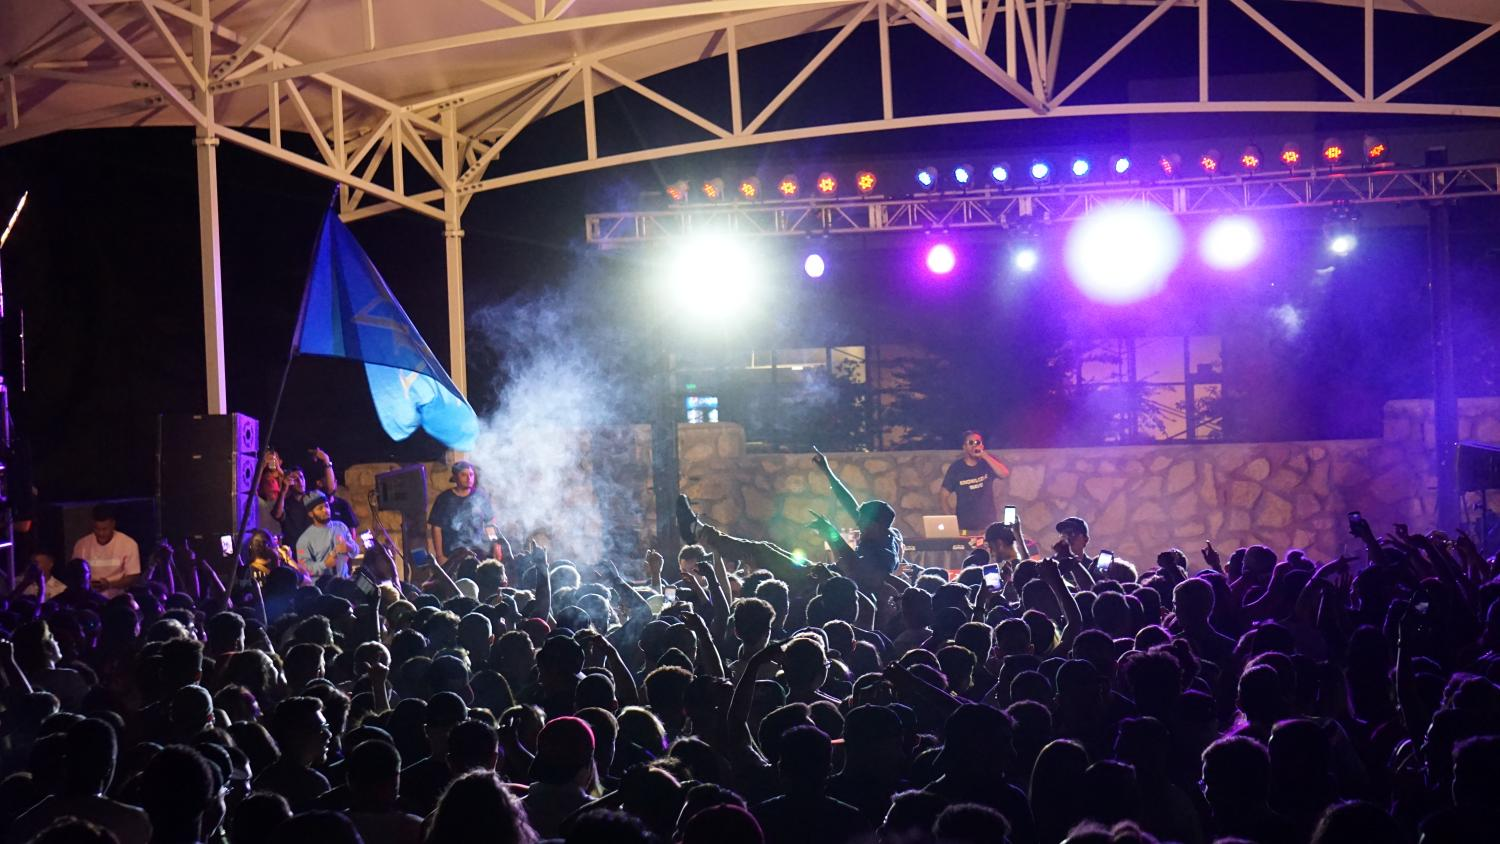 ASNMSU has historically proven to attract talent for concerts.